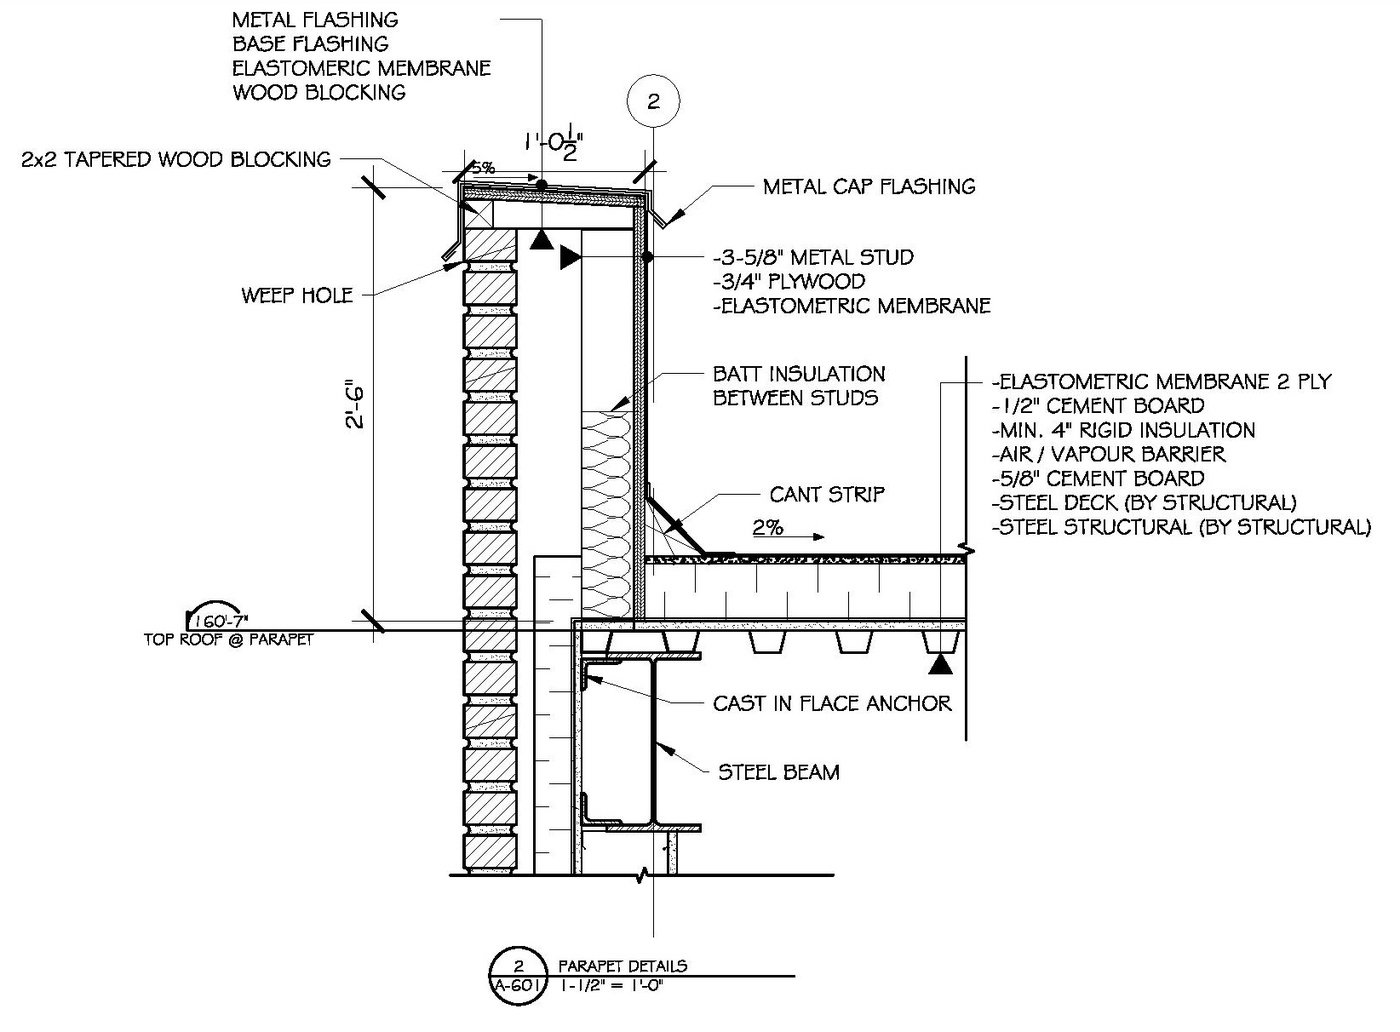 commercial building plans by raymond alberga at coroflot com